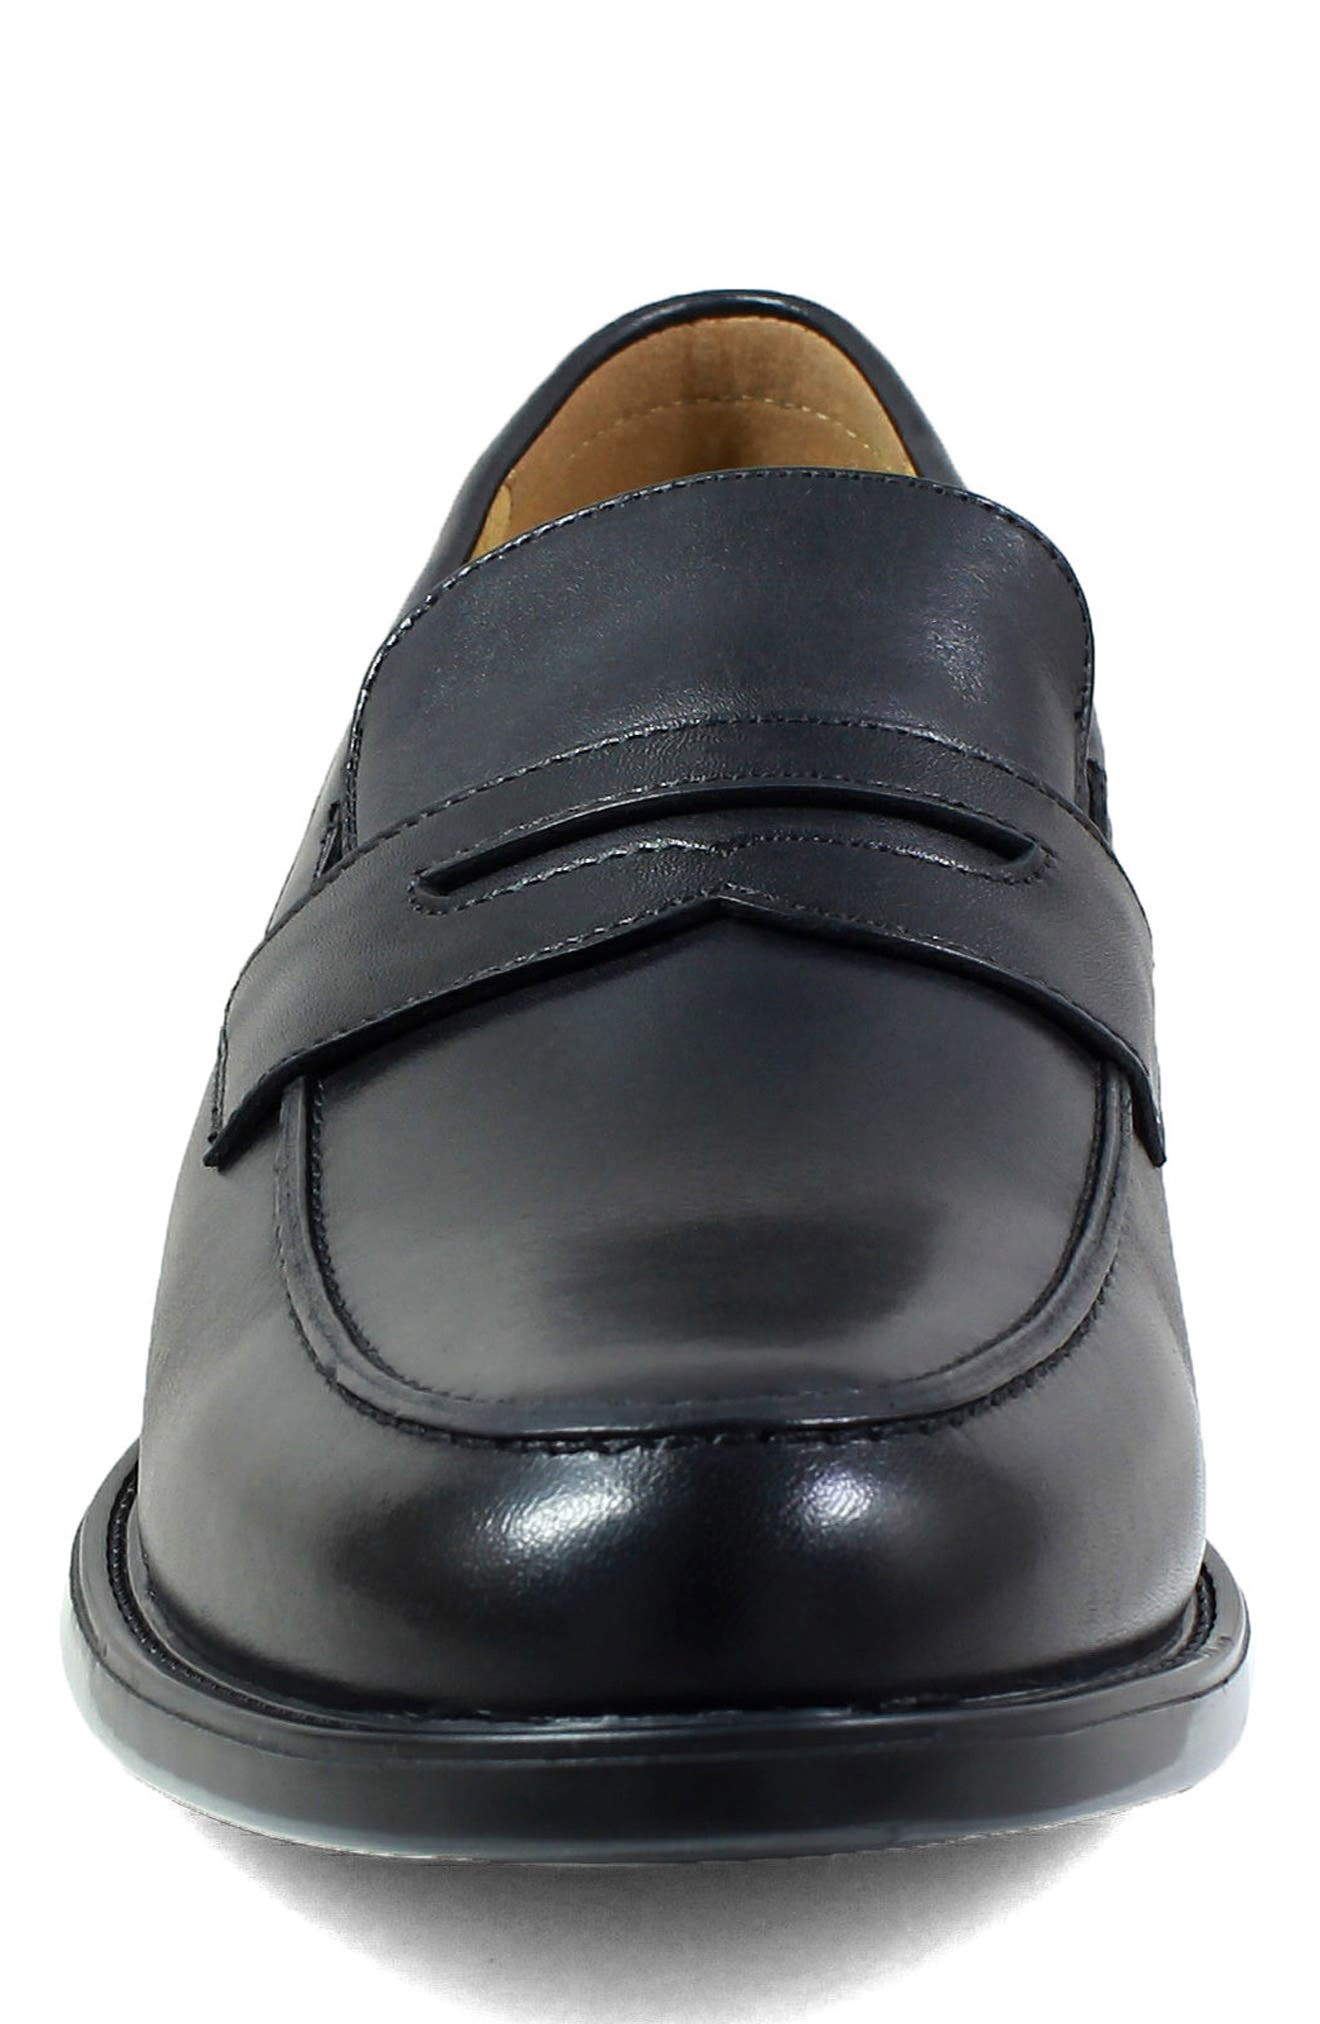 Midtown Penny Loafer,                             Alternate thumbnail 4, color,                             001